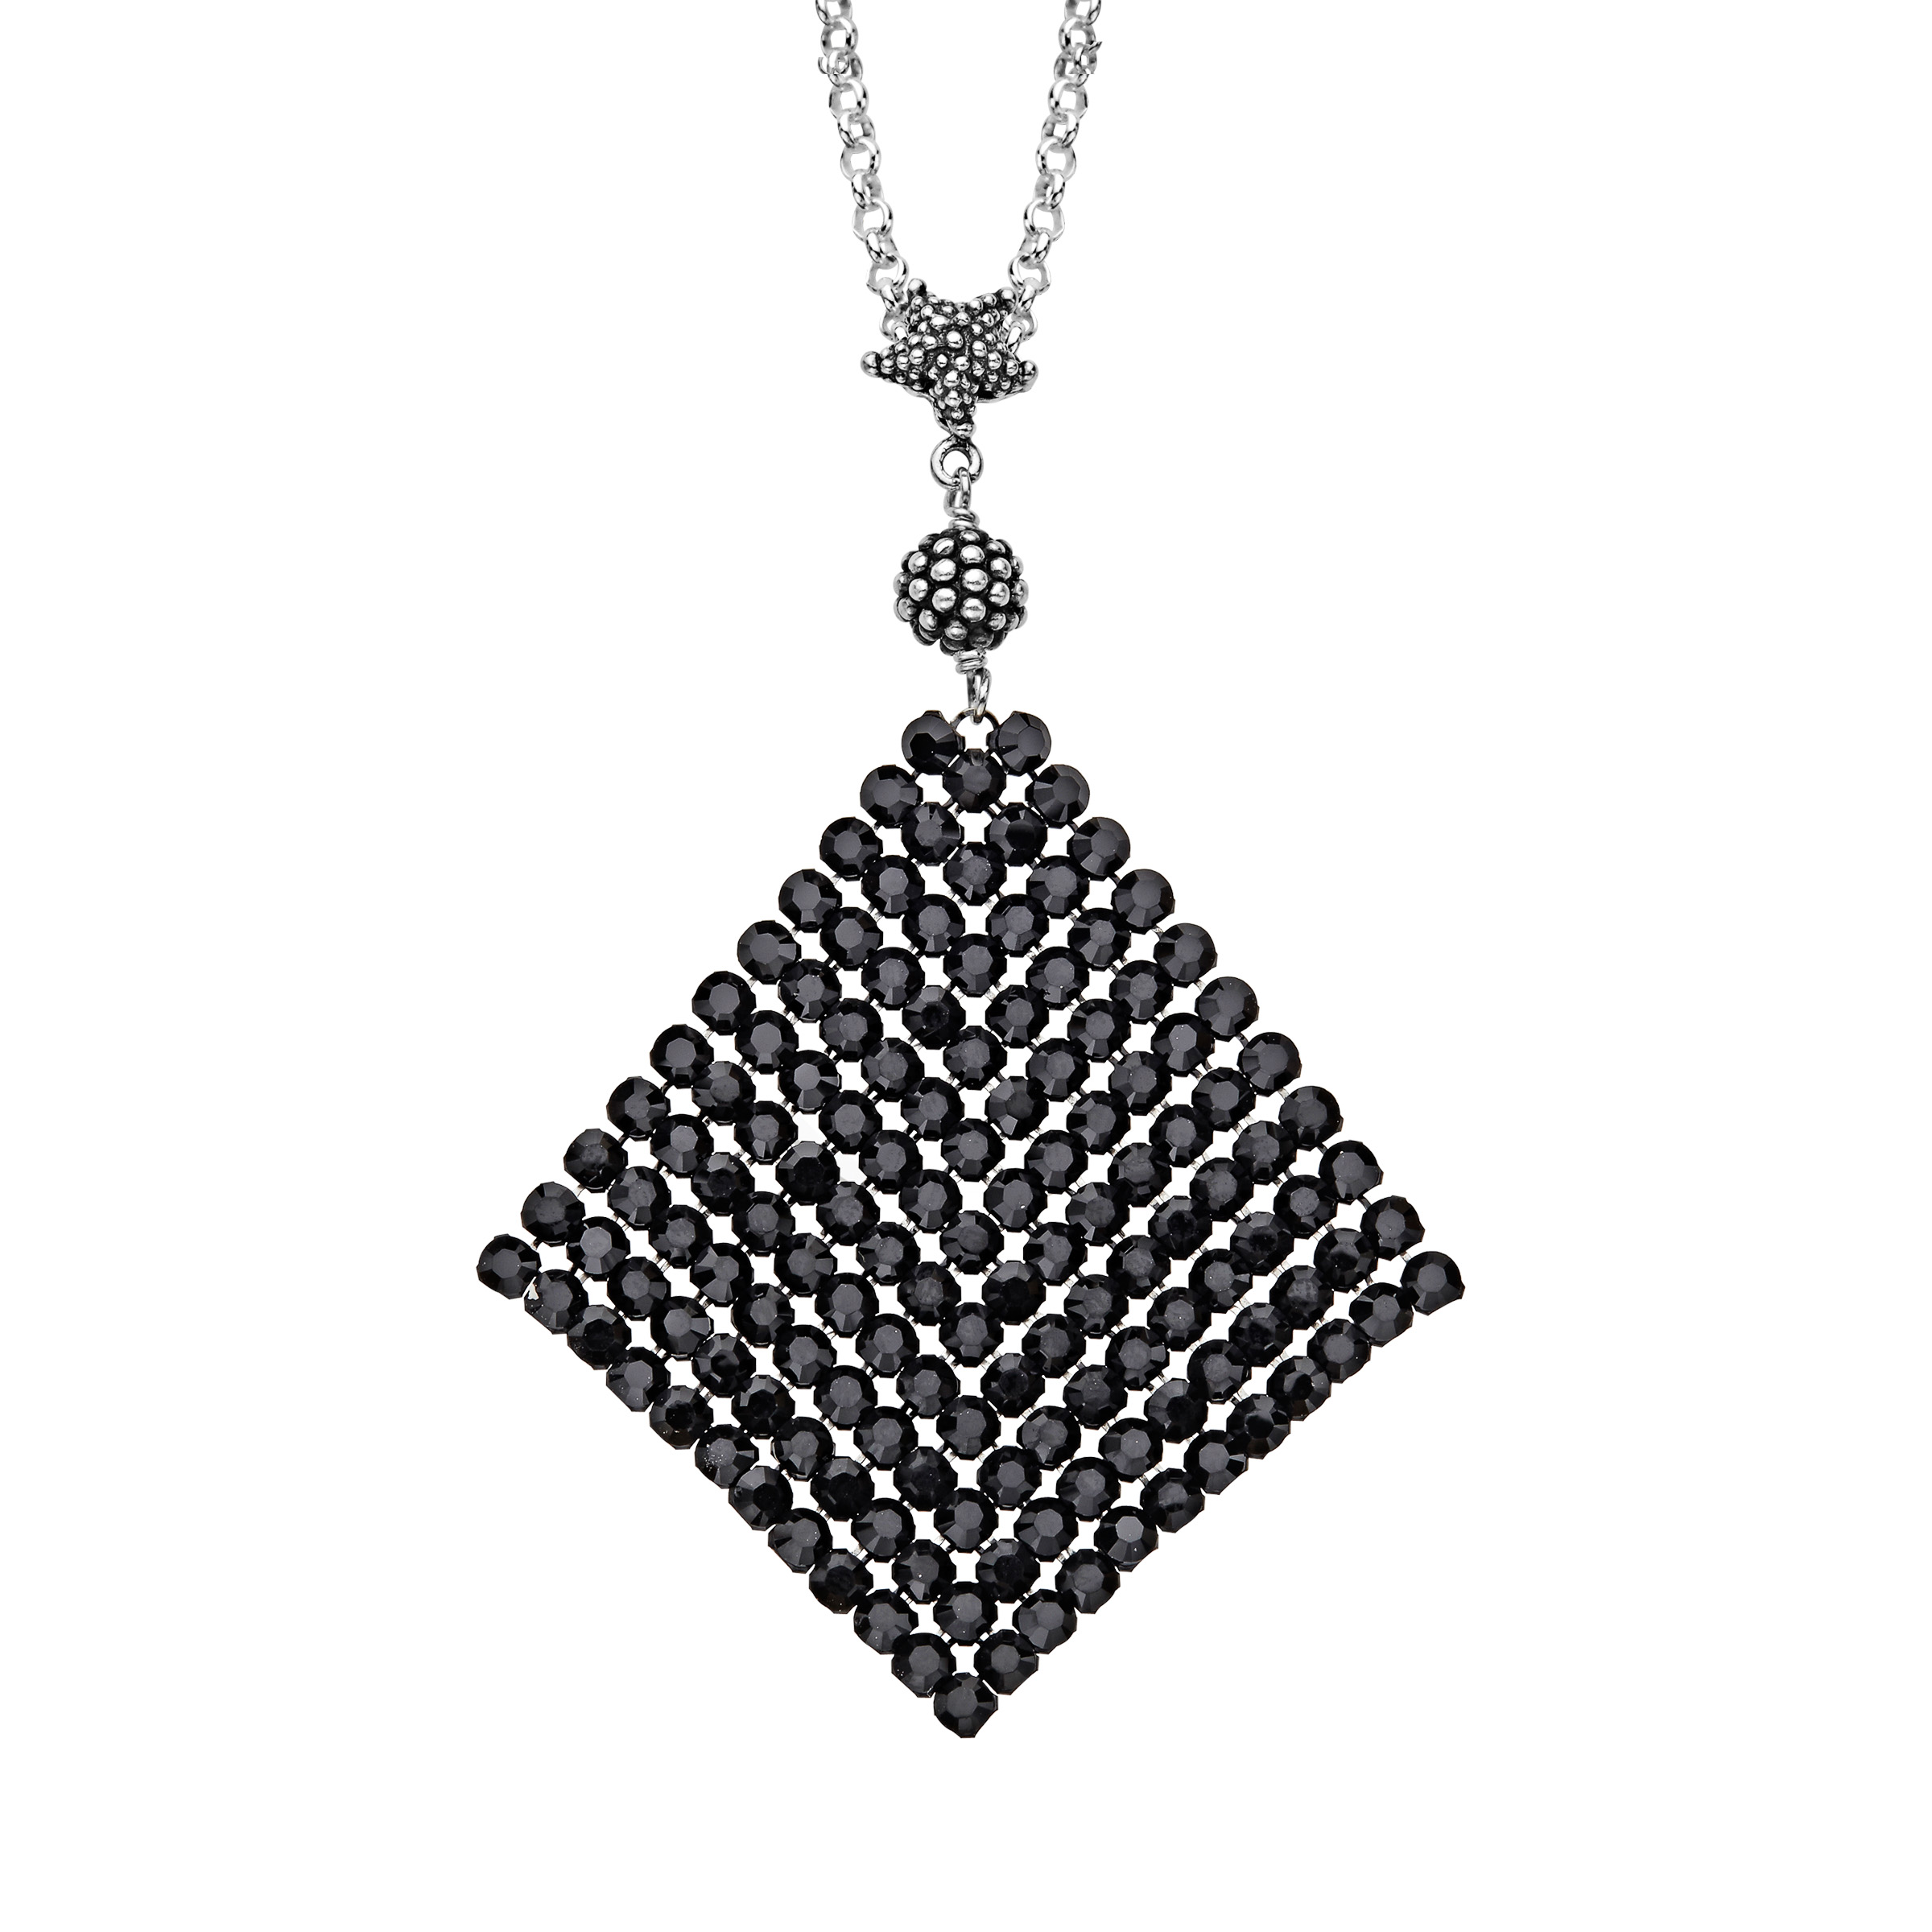 Aya Azrielant Mesh Pendant Necklace with Jet Black Swarovski Crystals in Sterling Silver